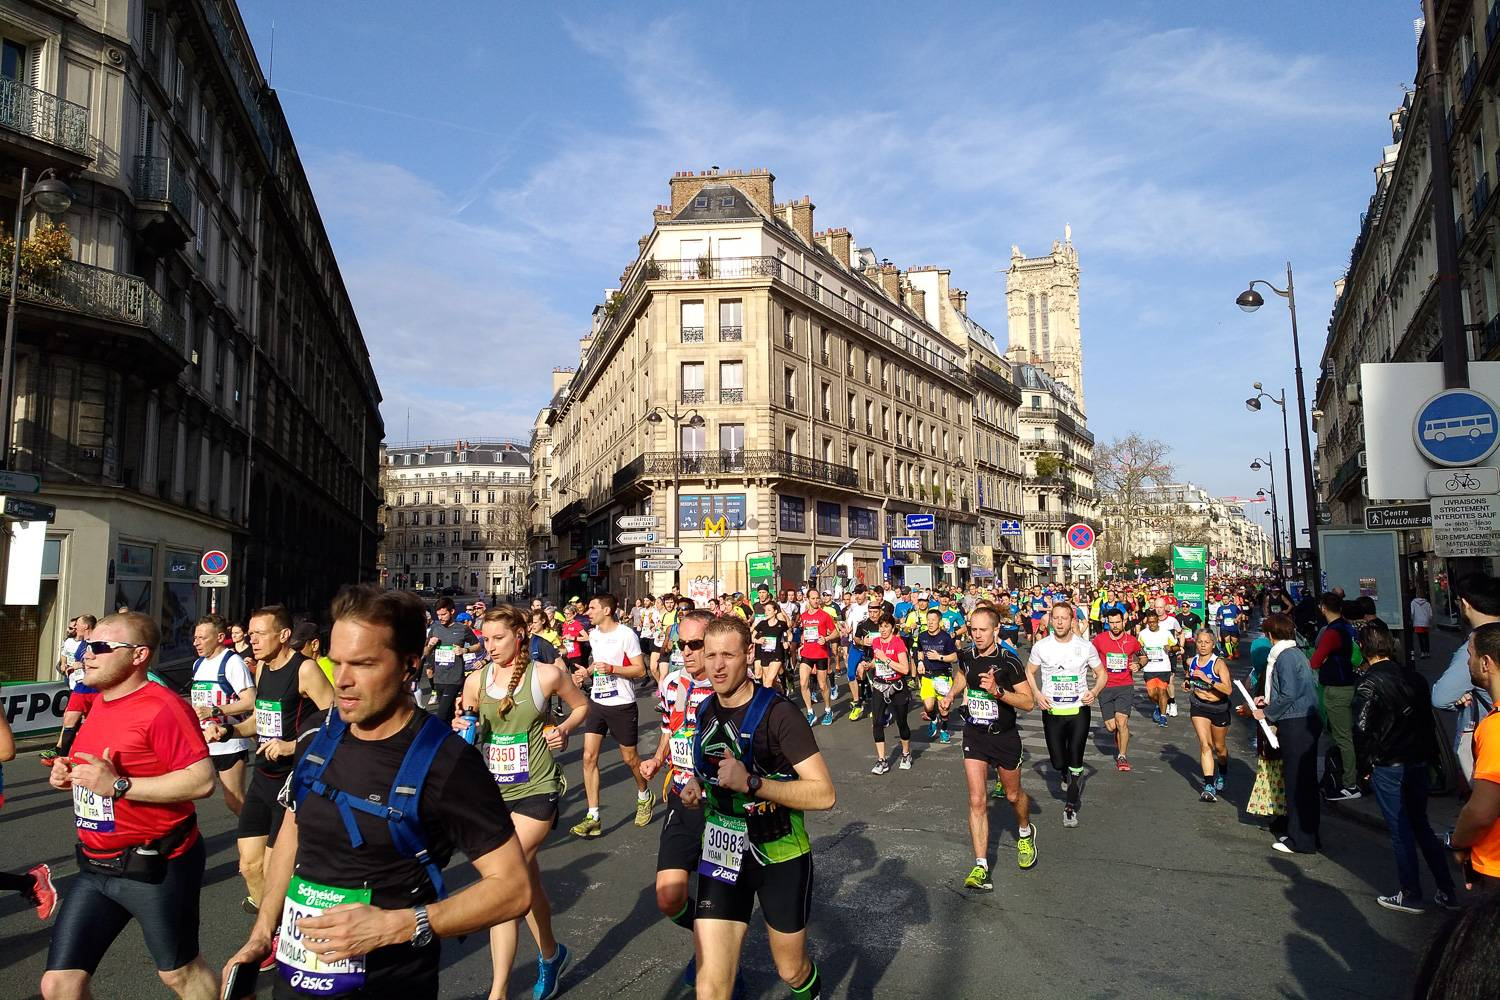 Photo de coureurs passant devant un immeuble haussmannien lors du marathon de Paris 2018.